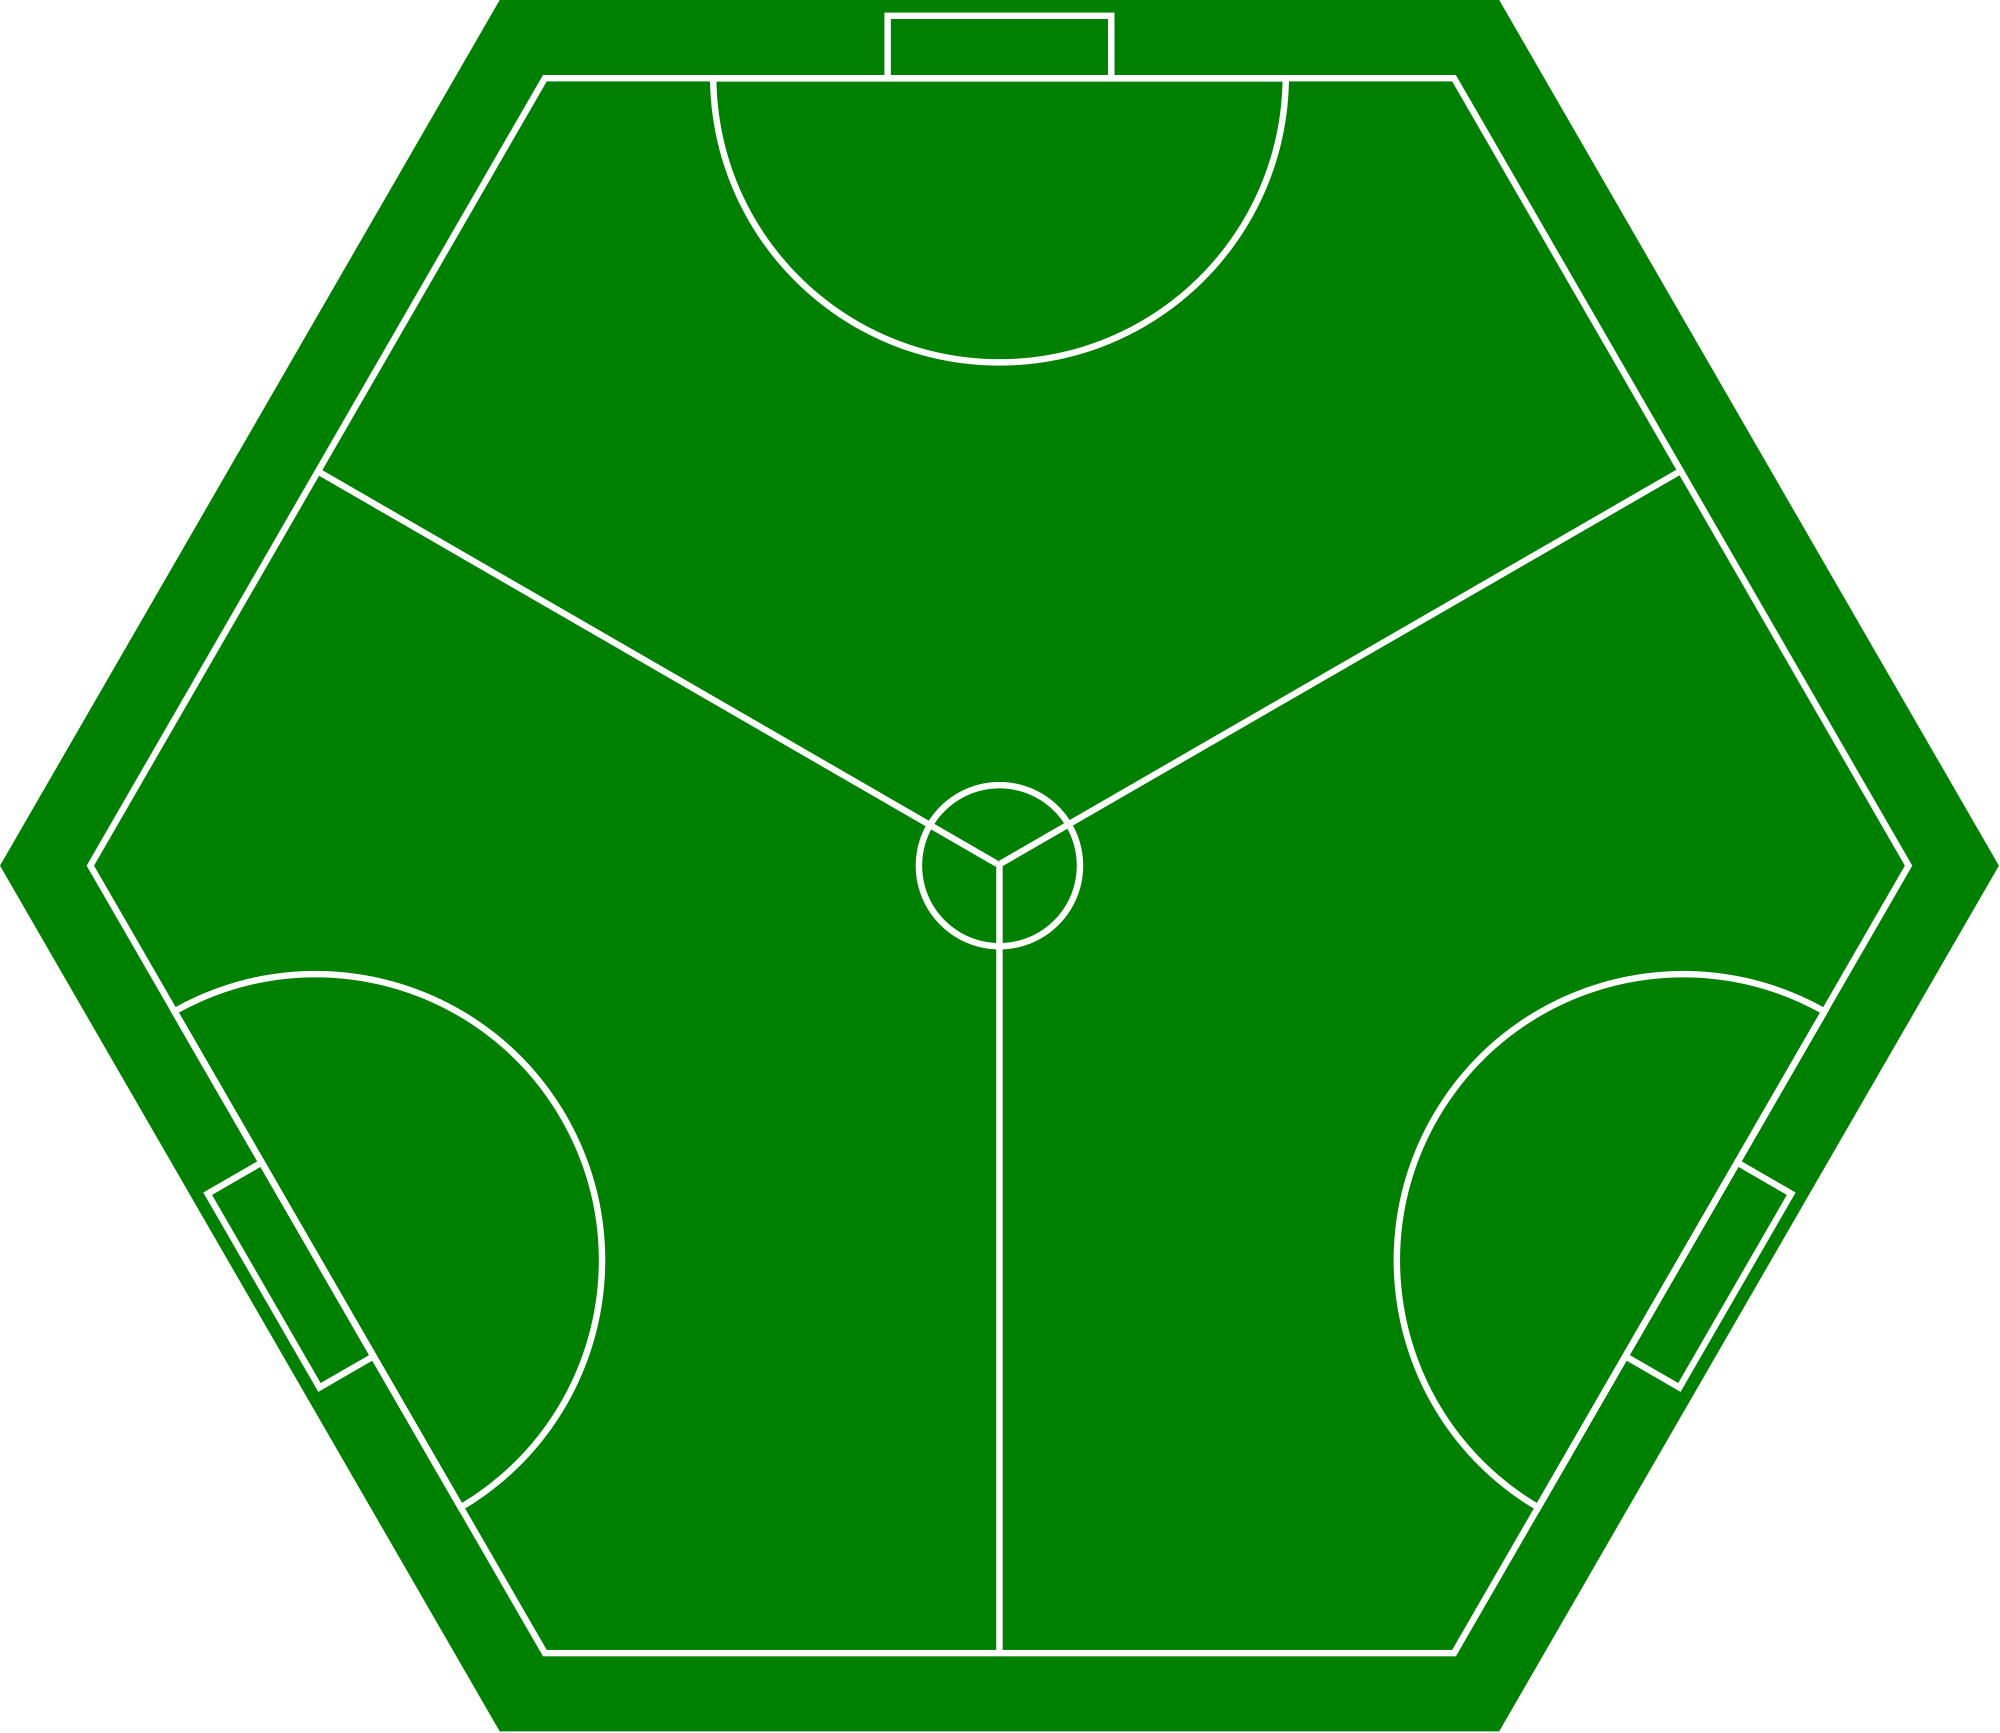 Free football field clipart svg free File:Three sided football pitch.svg - Wikimedia Commons svg free